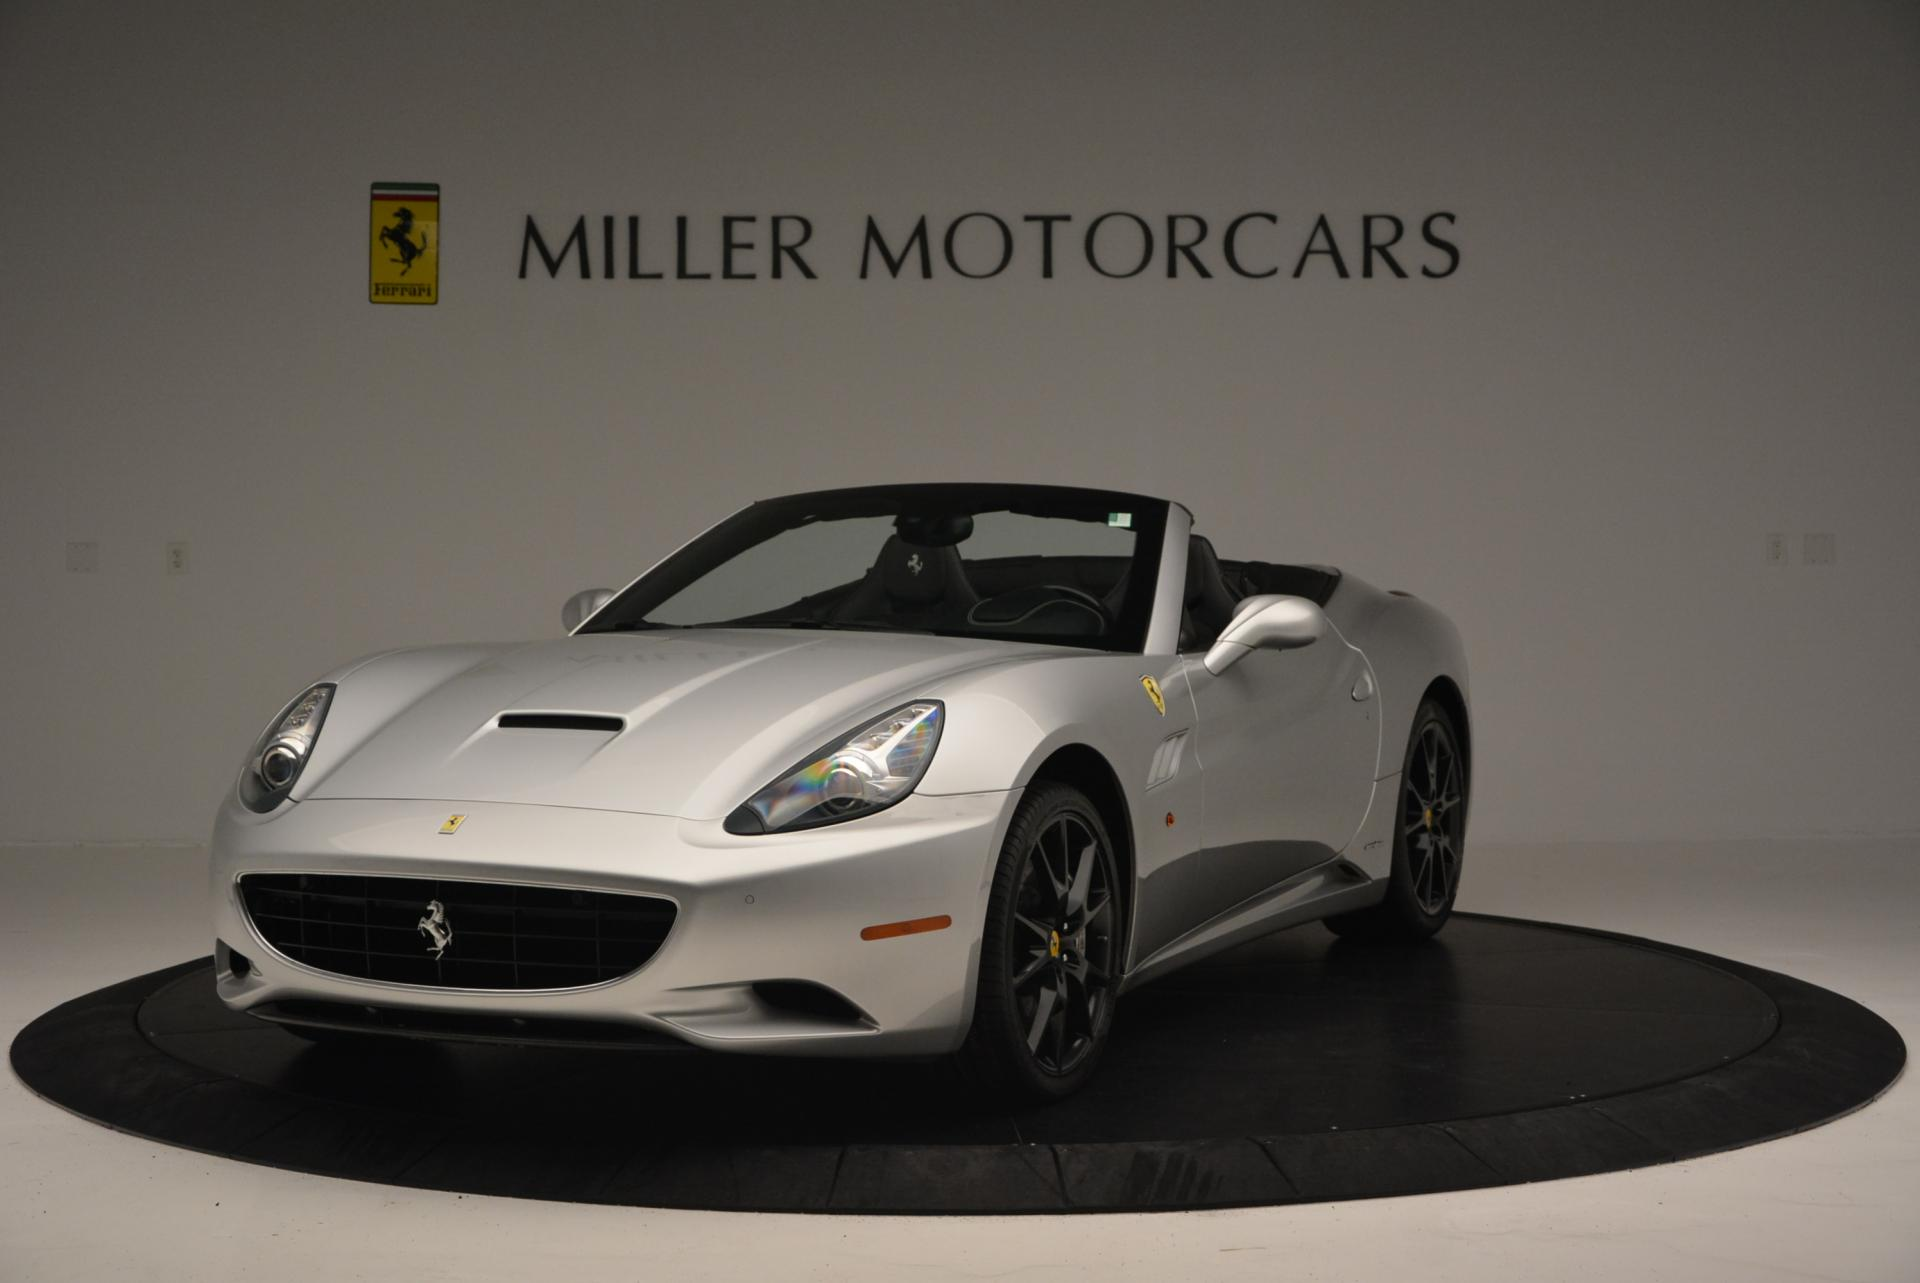 Used 2012 Ferrari California for sale Sold at Bentley Greenwich in Greenwich CT 06830 1